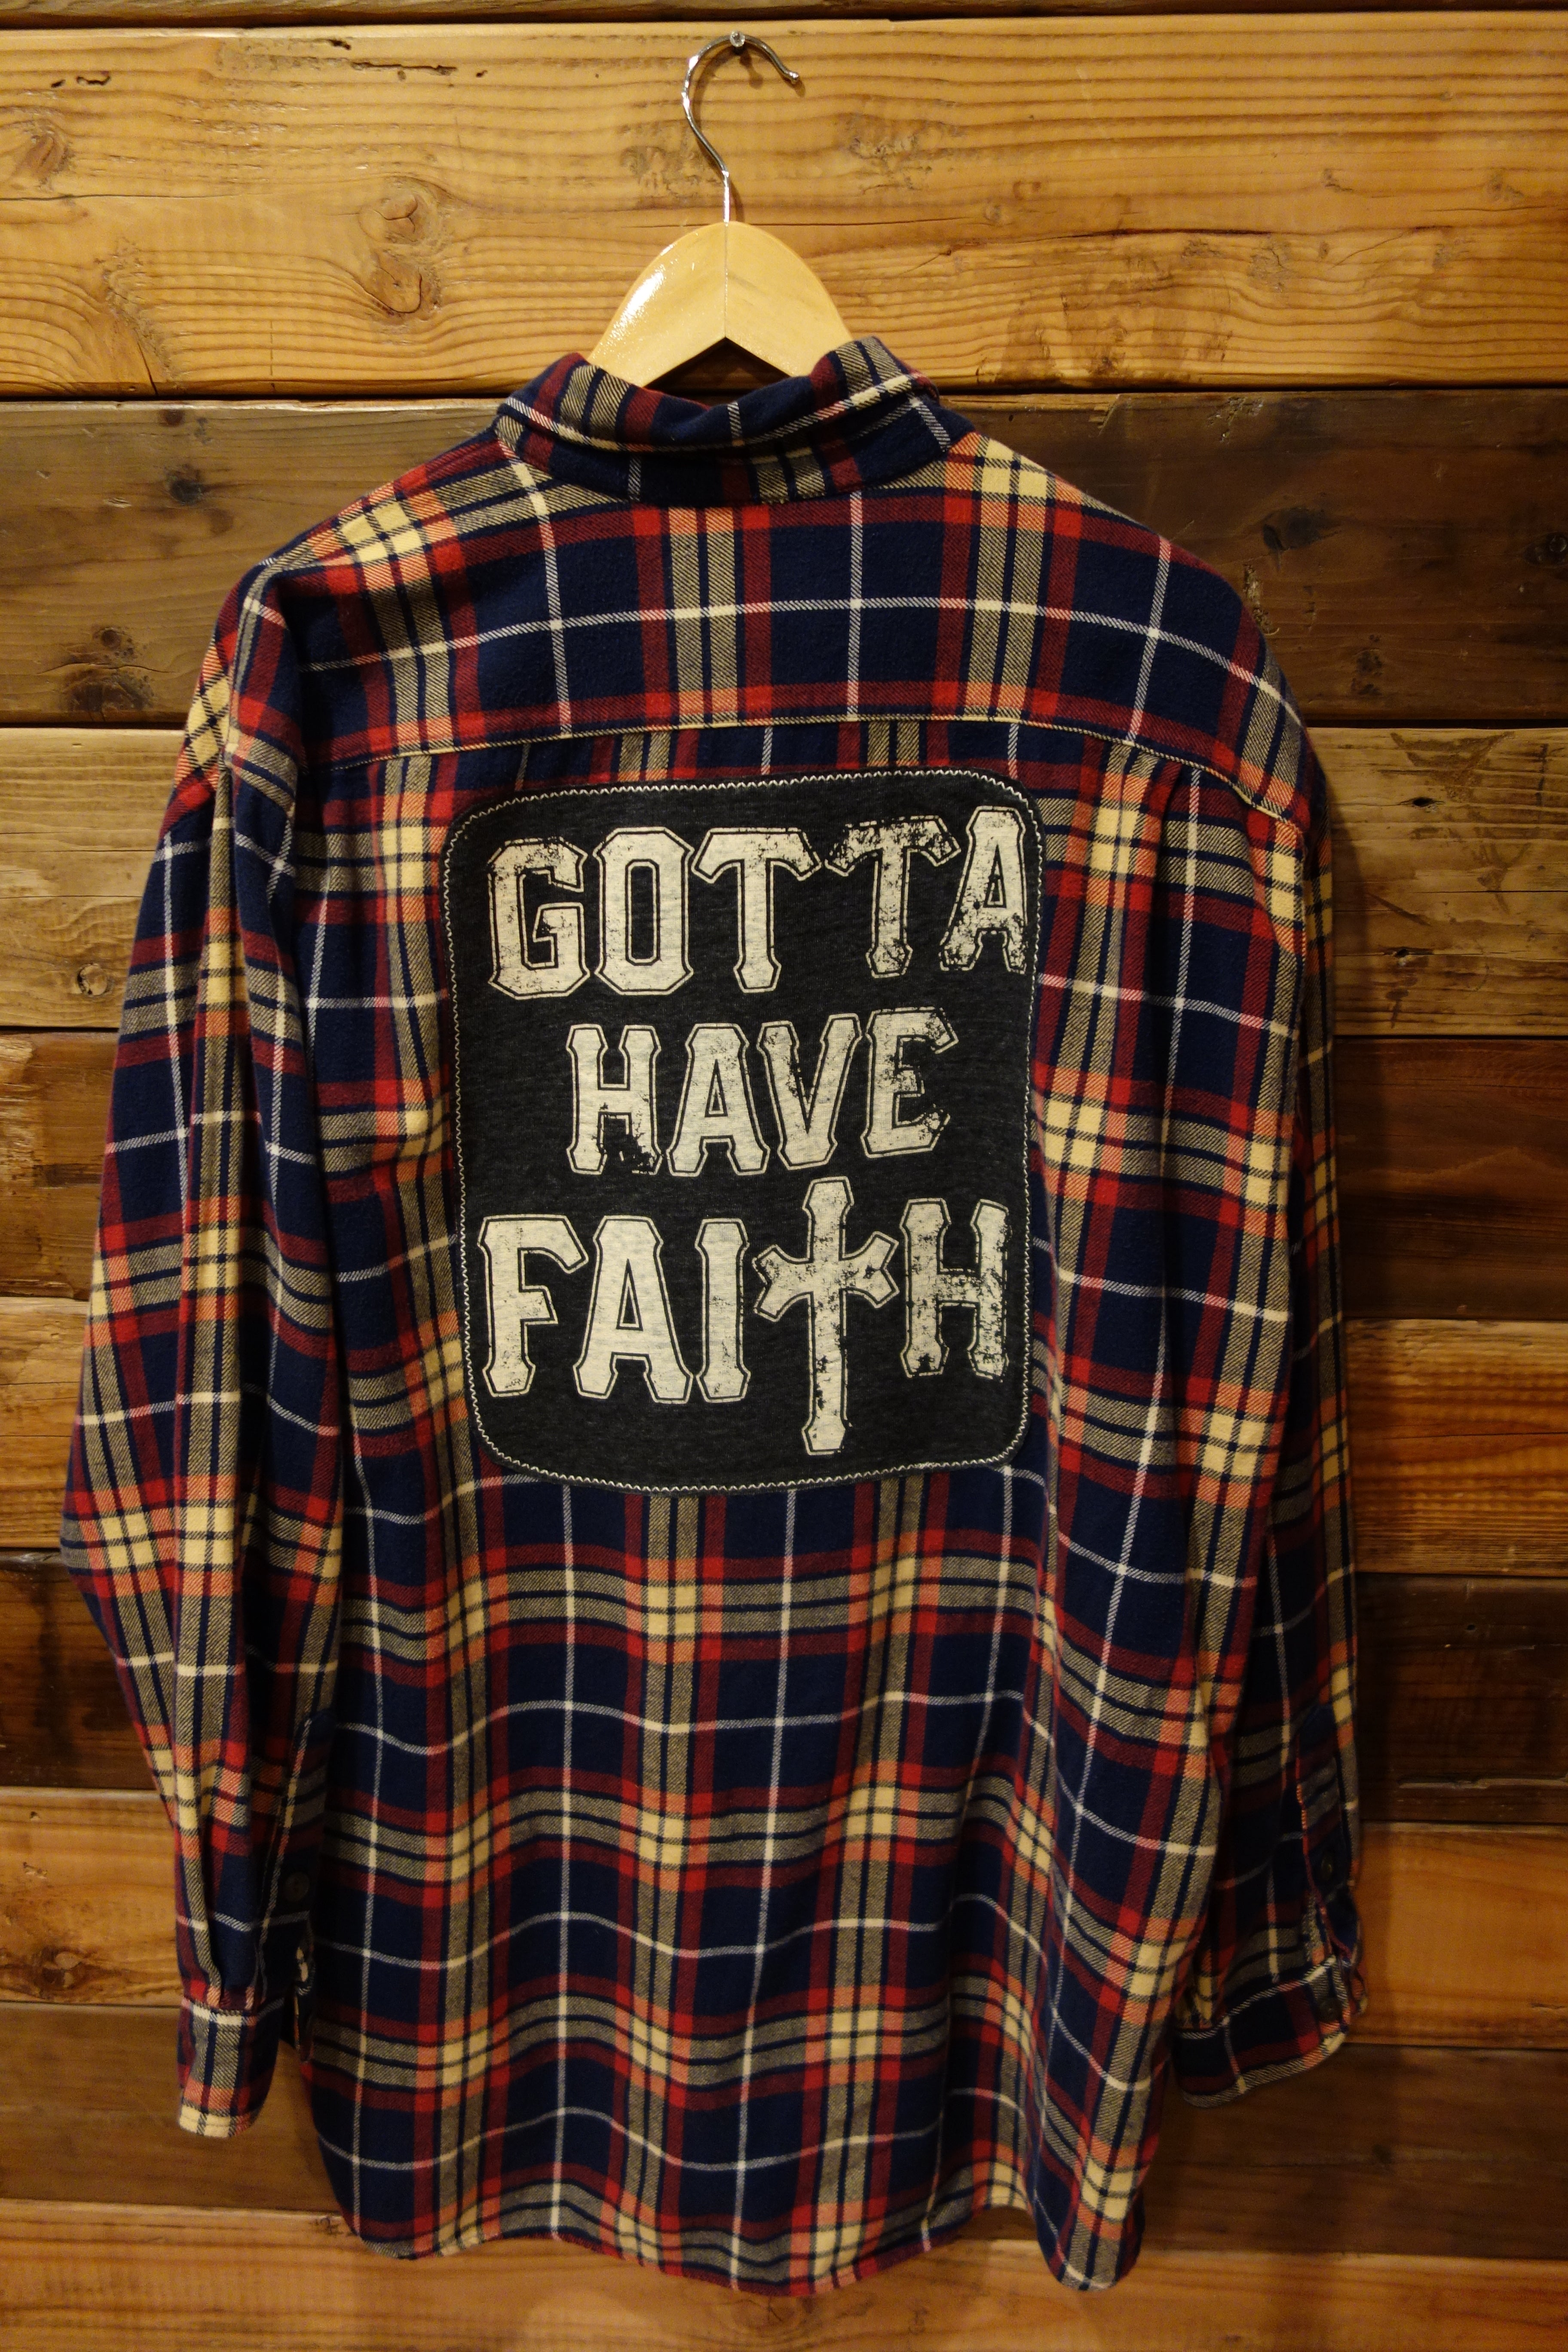 George Michael Gotta Have Faith one of a kind vintage Abercrombie and Fitch big shirt flannel